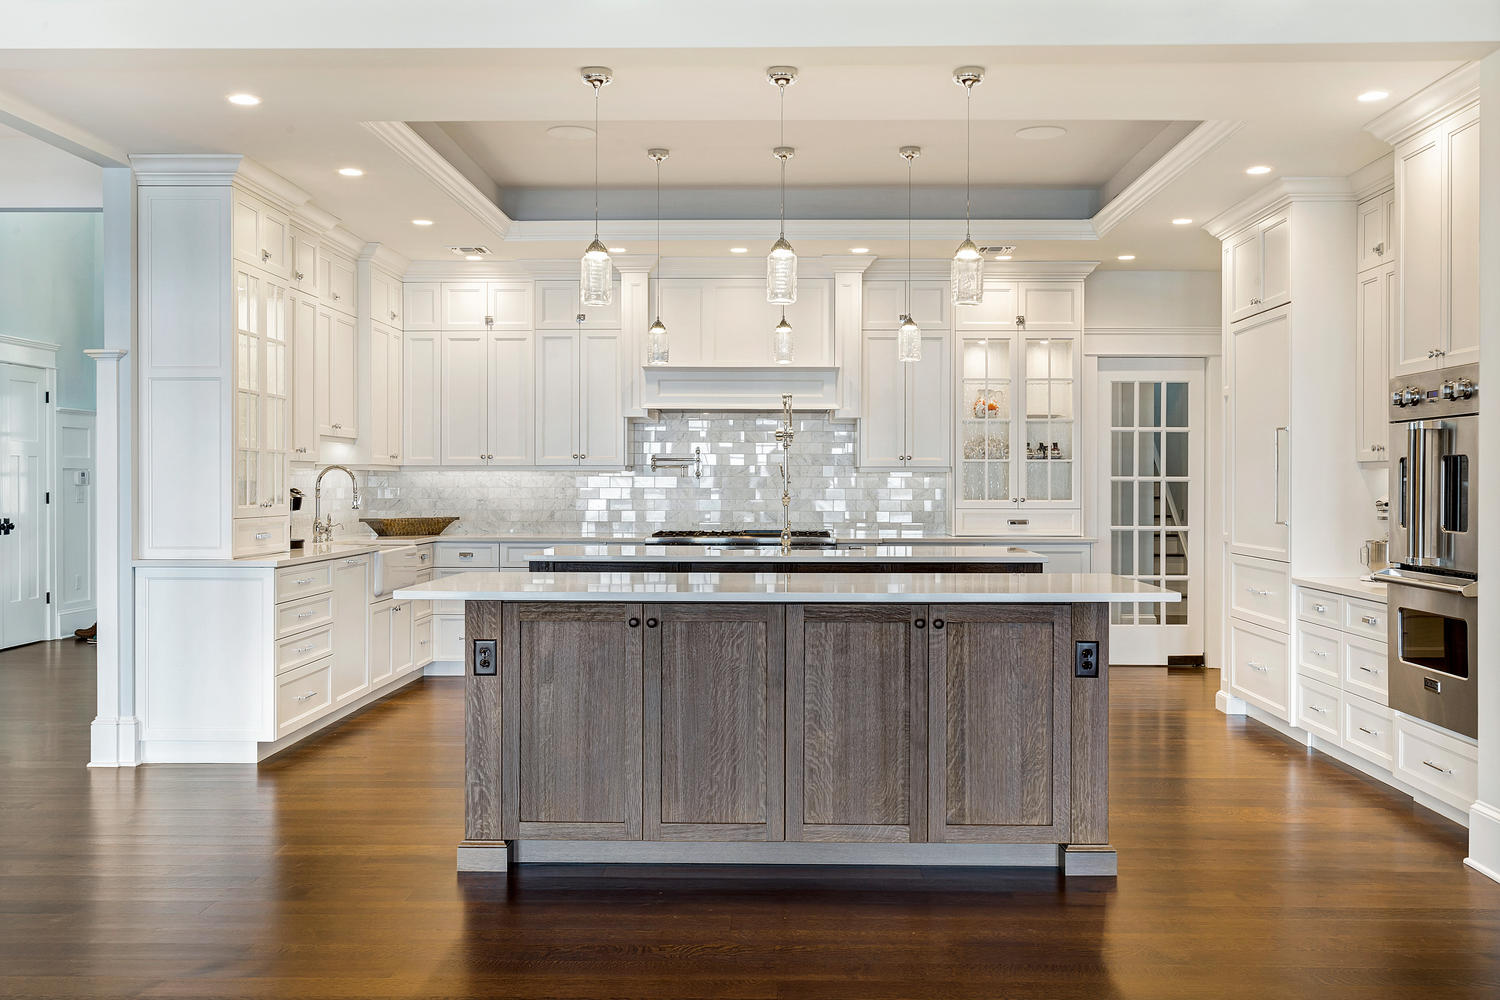 Modern Kitchen Islands Images